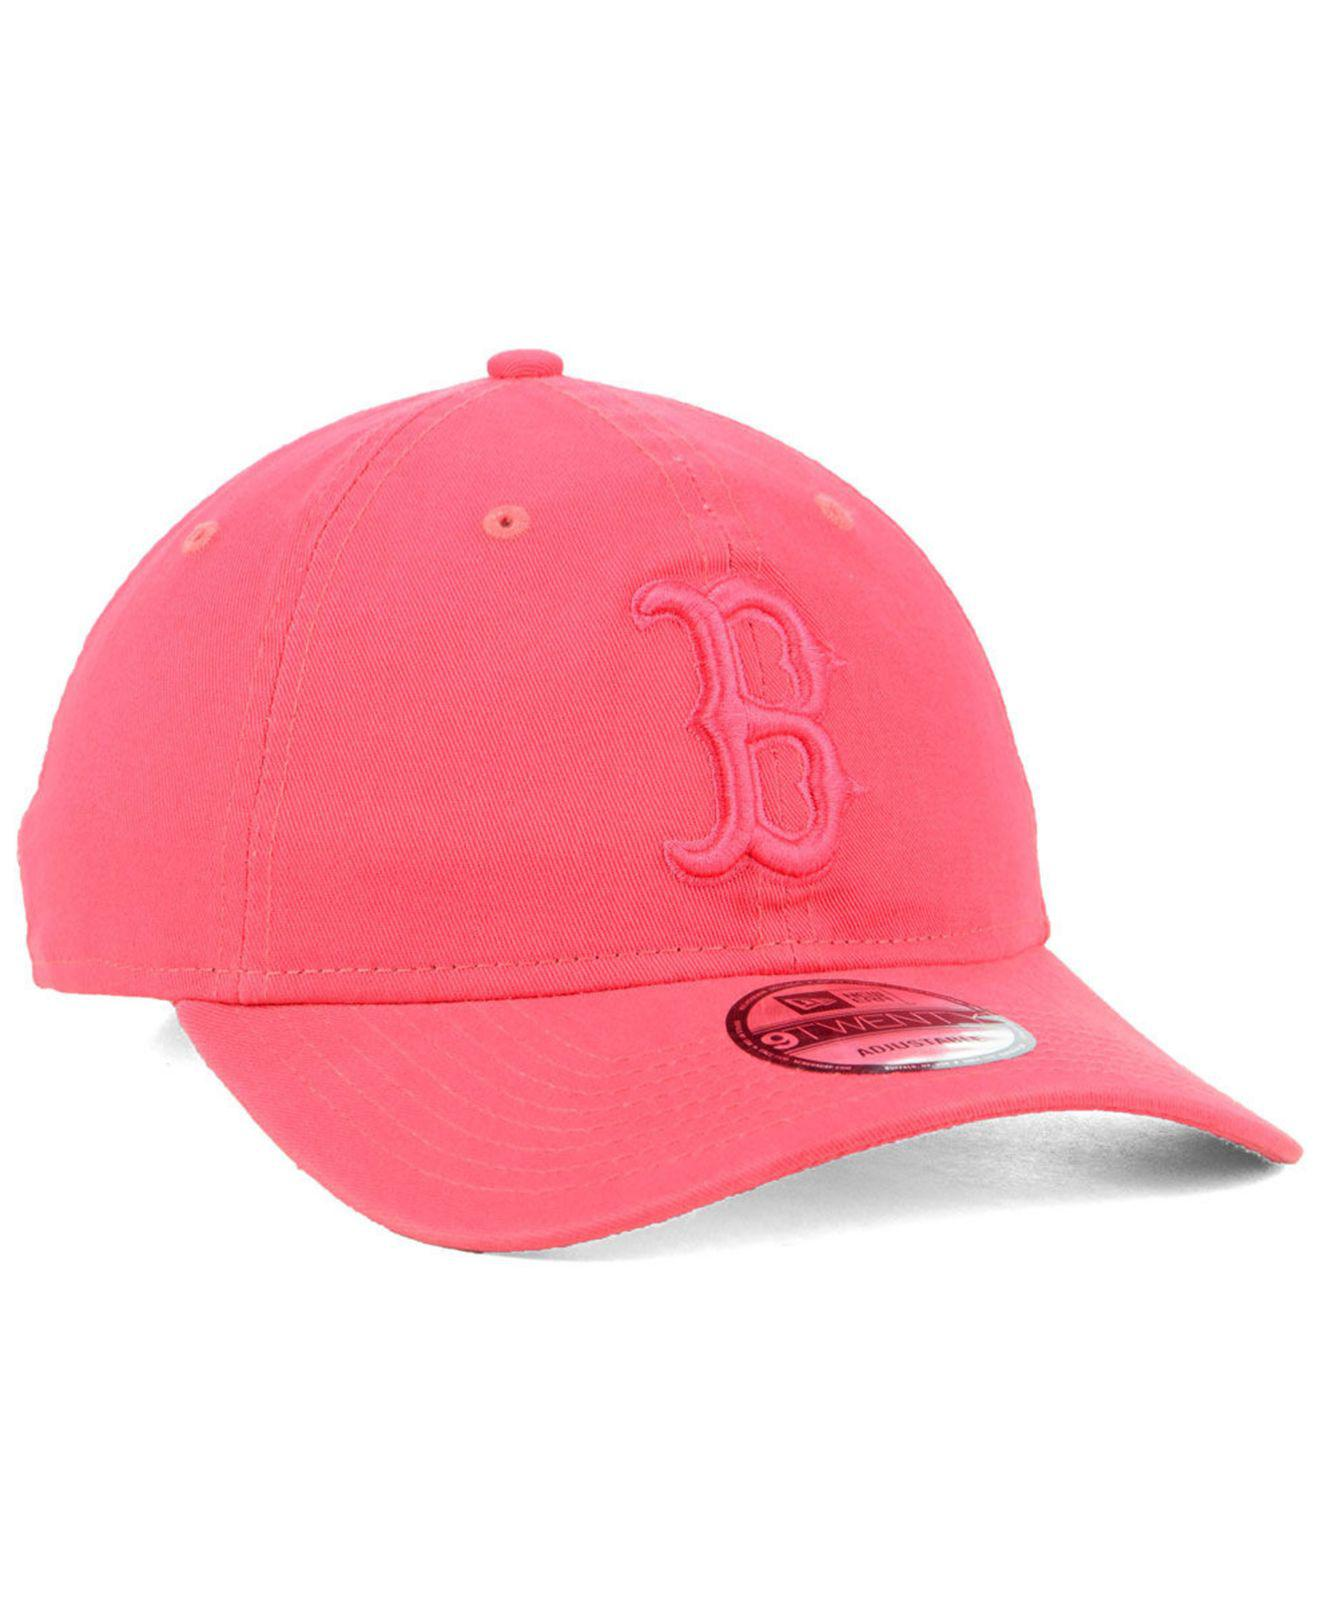 detailed pictures 72403 e2c2b ... canada boston red sox spring classic 9twenty cap for men lyst. view  fullscreen 50af7 c6d98